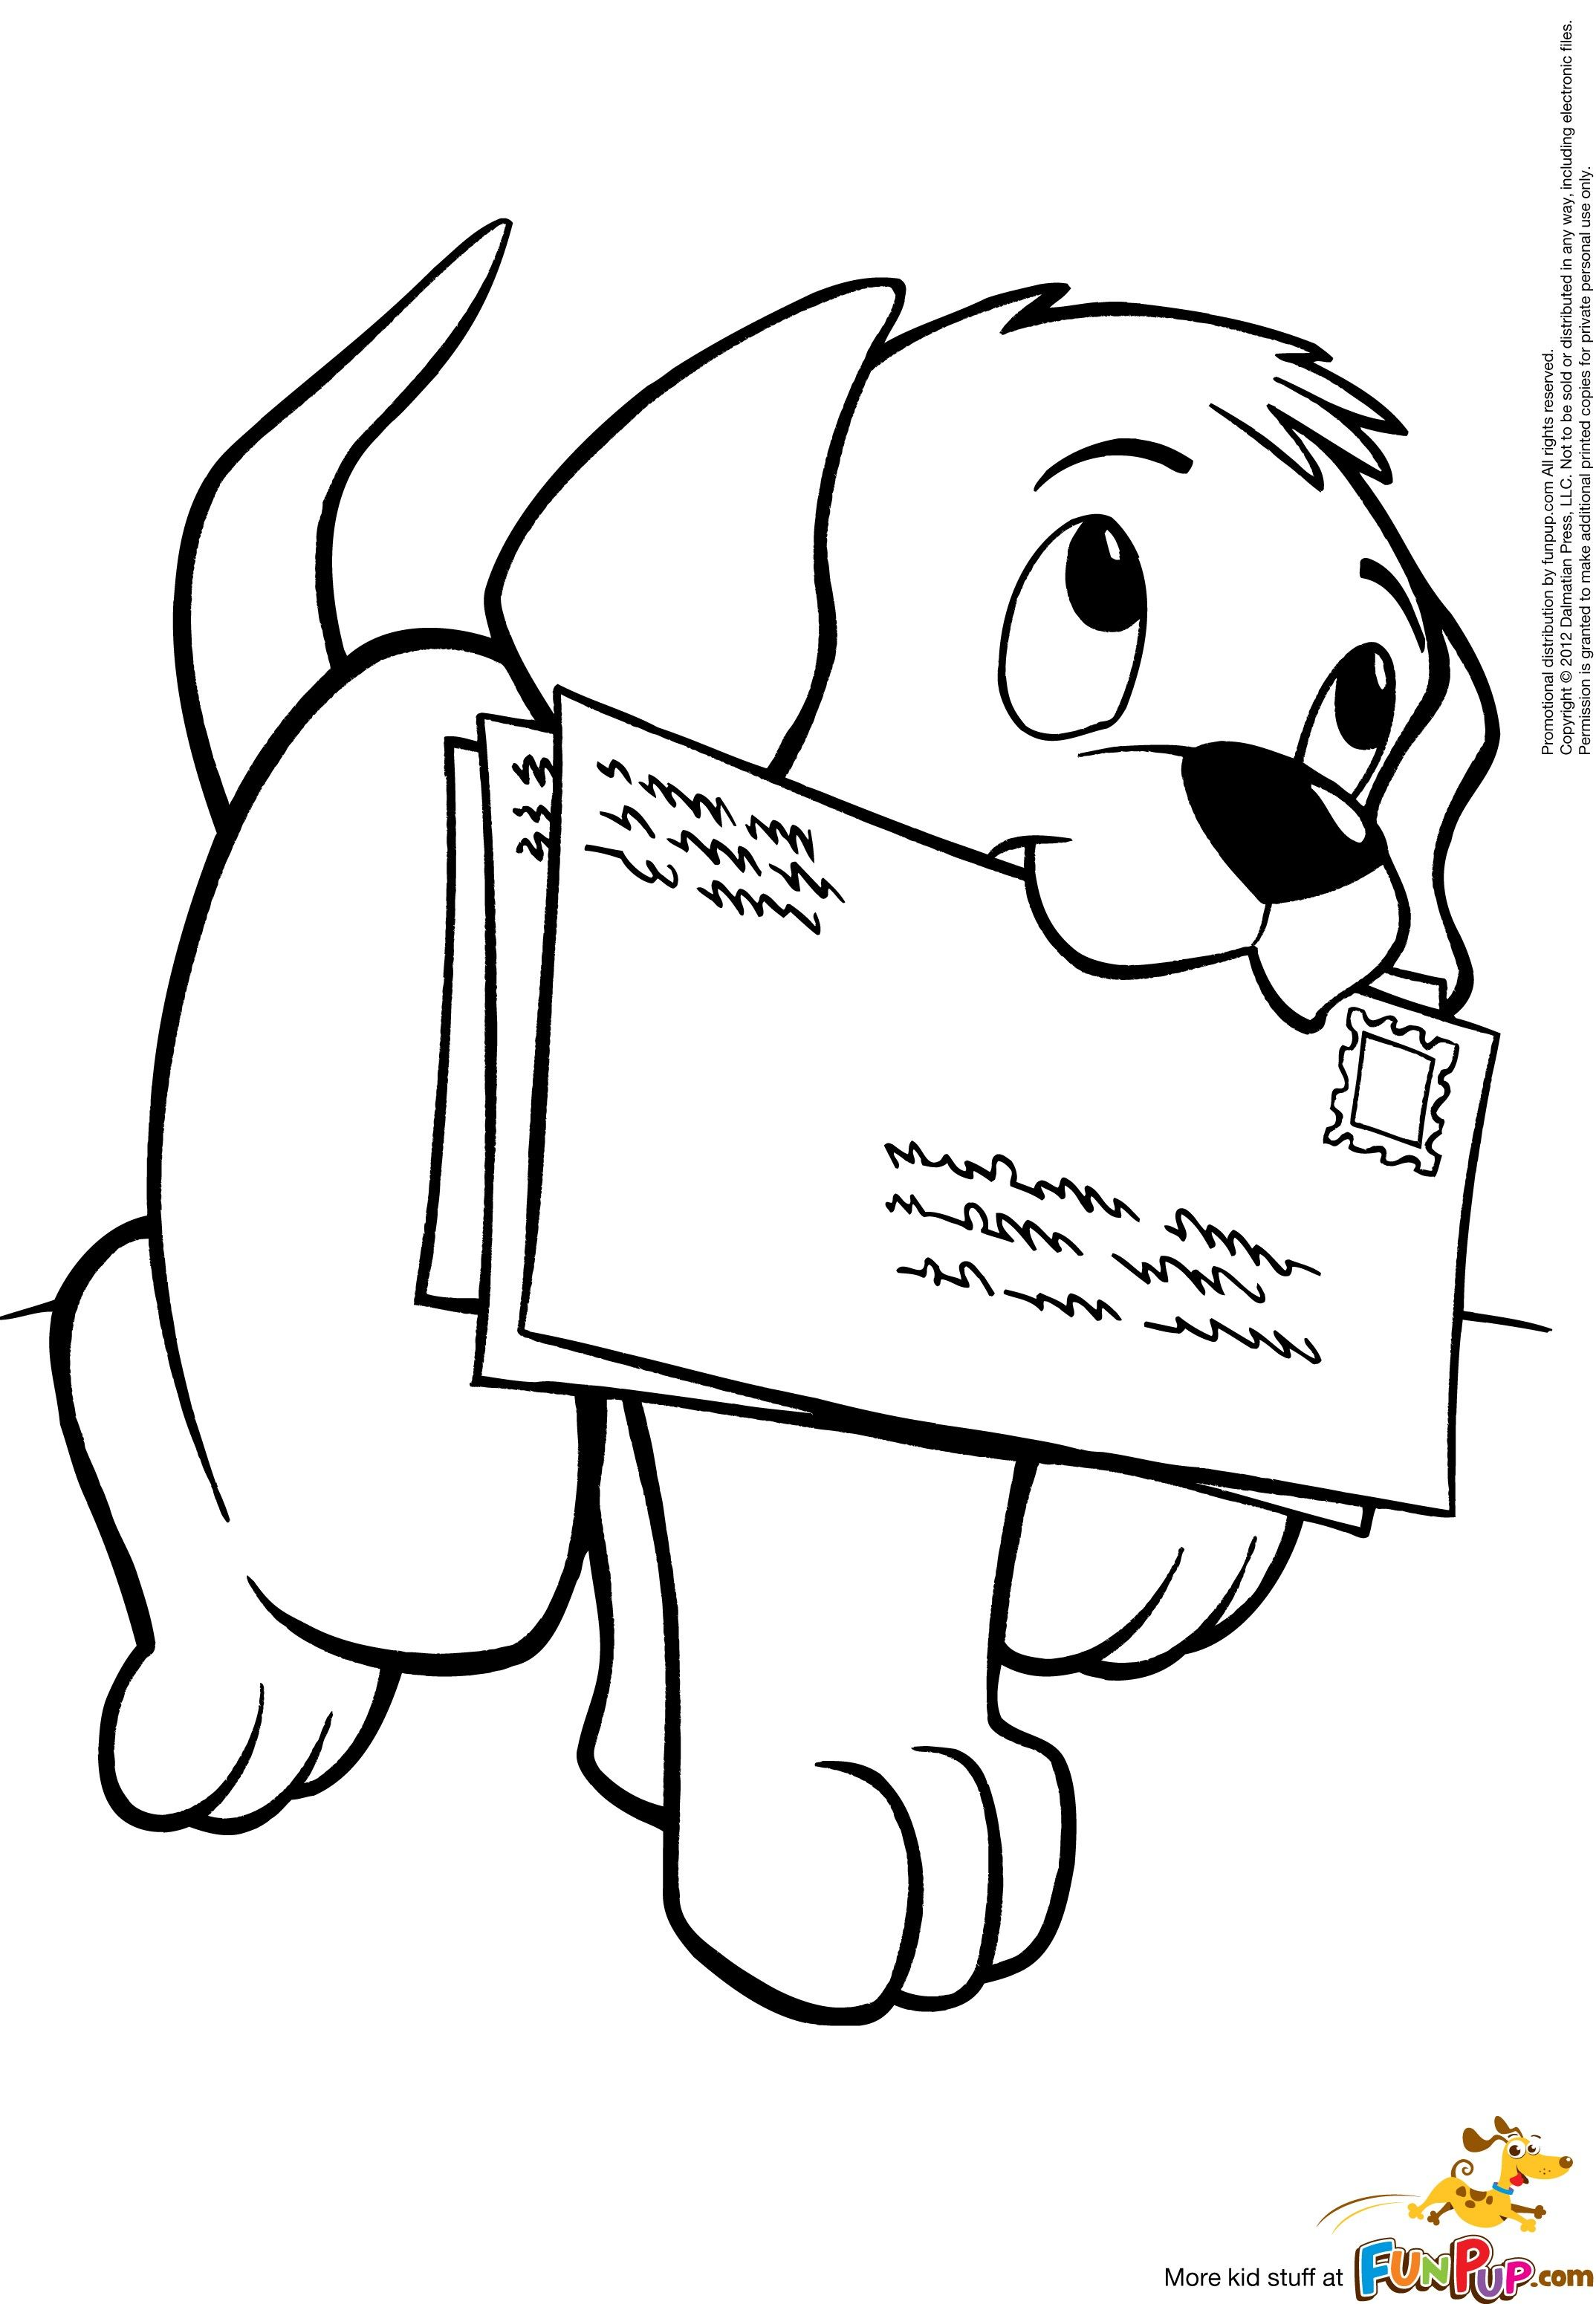 dog pictures to color free cartoon puppy coloring page for kids animal coloring pictures color dog free to